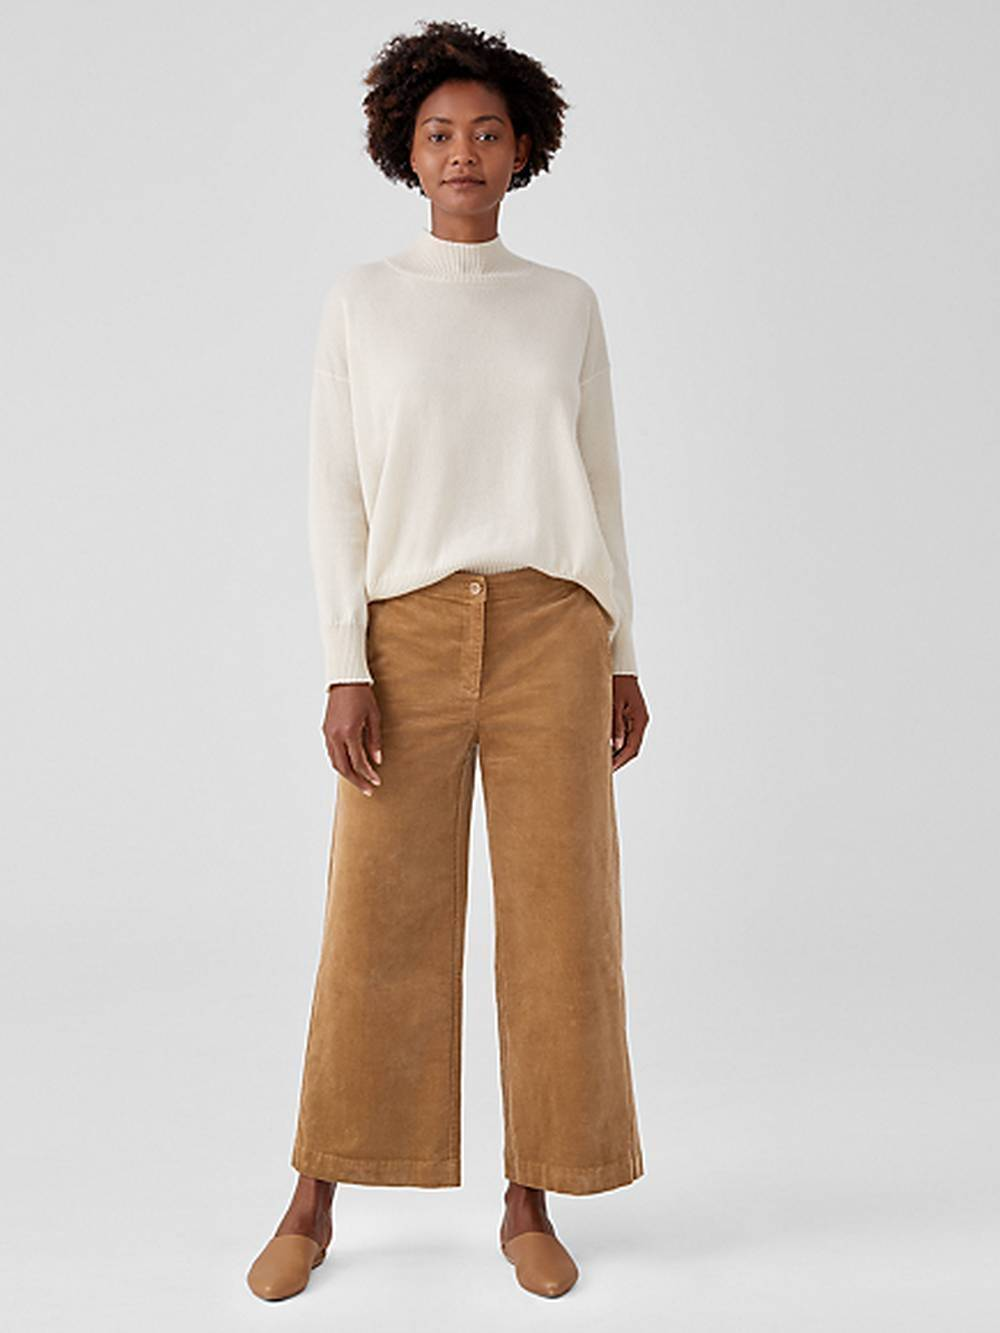 eileen fisher linen clothing designer